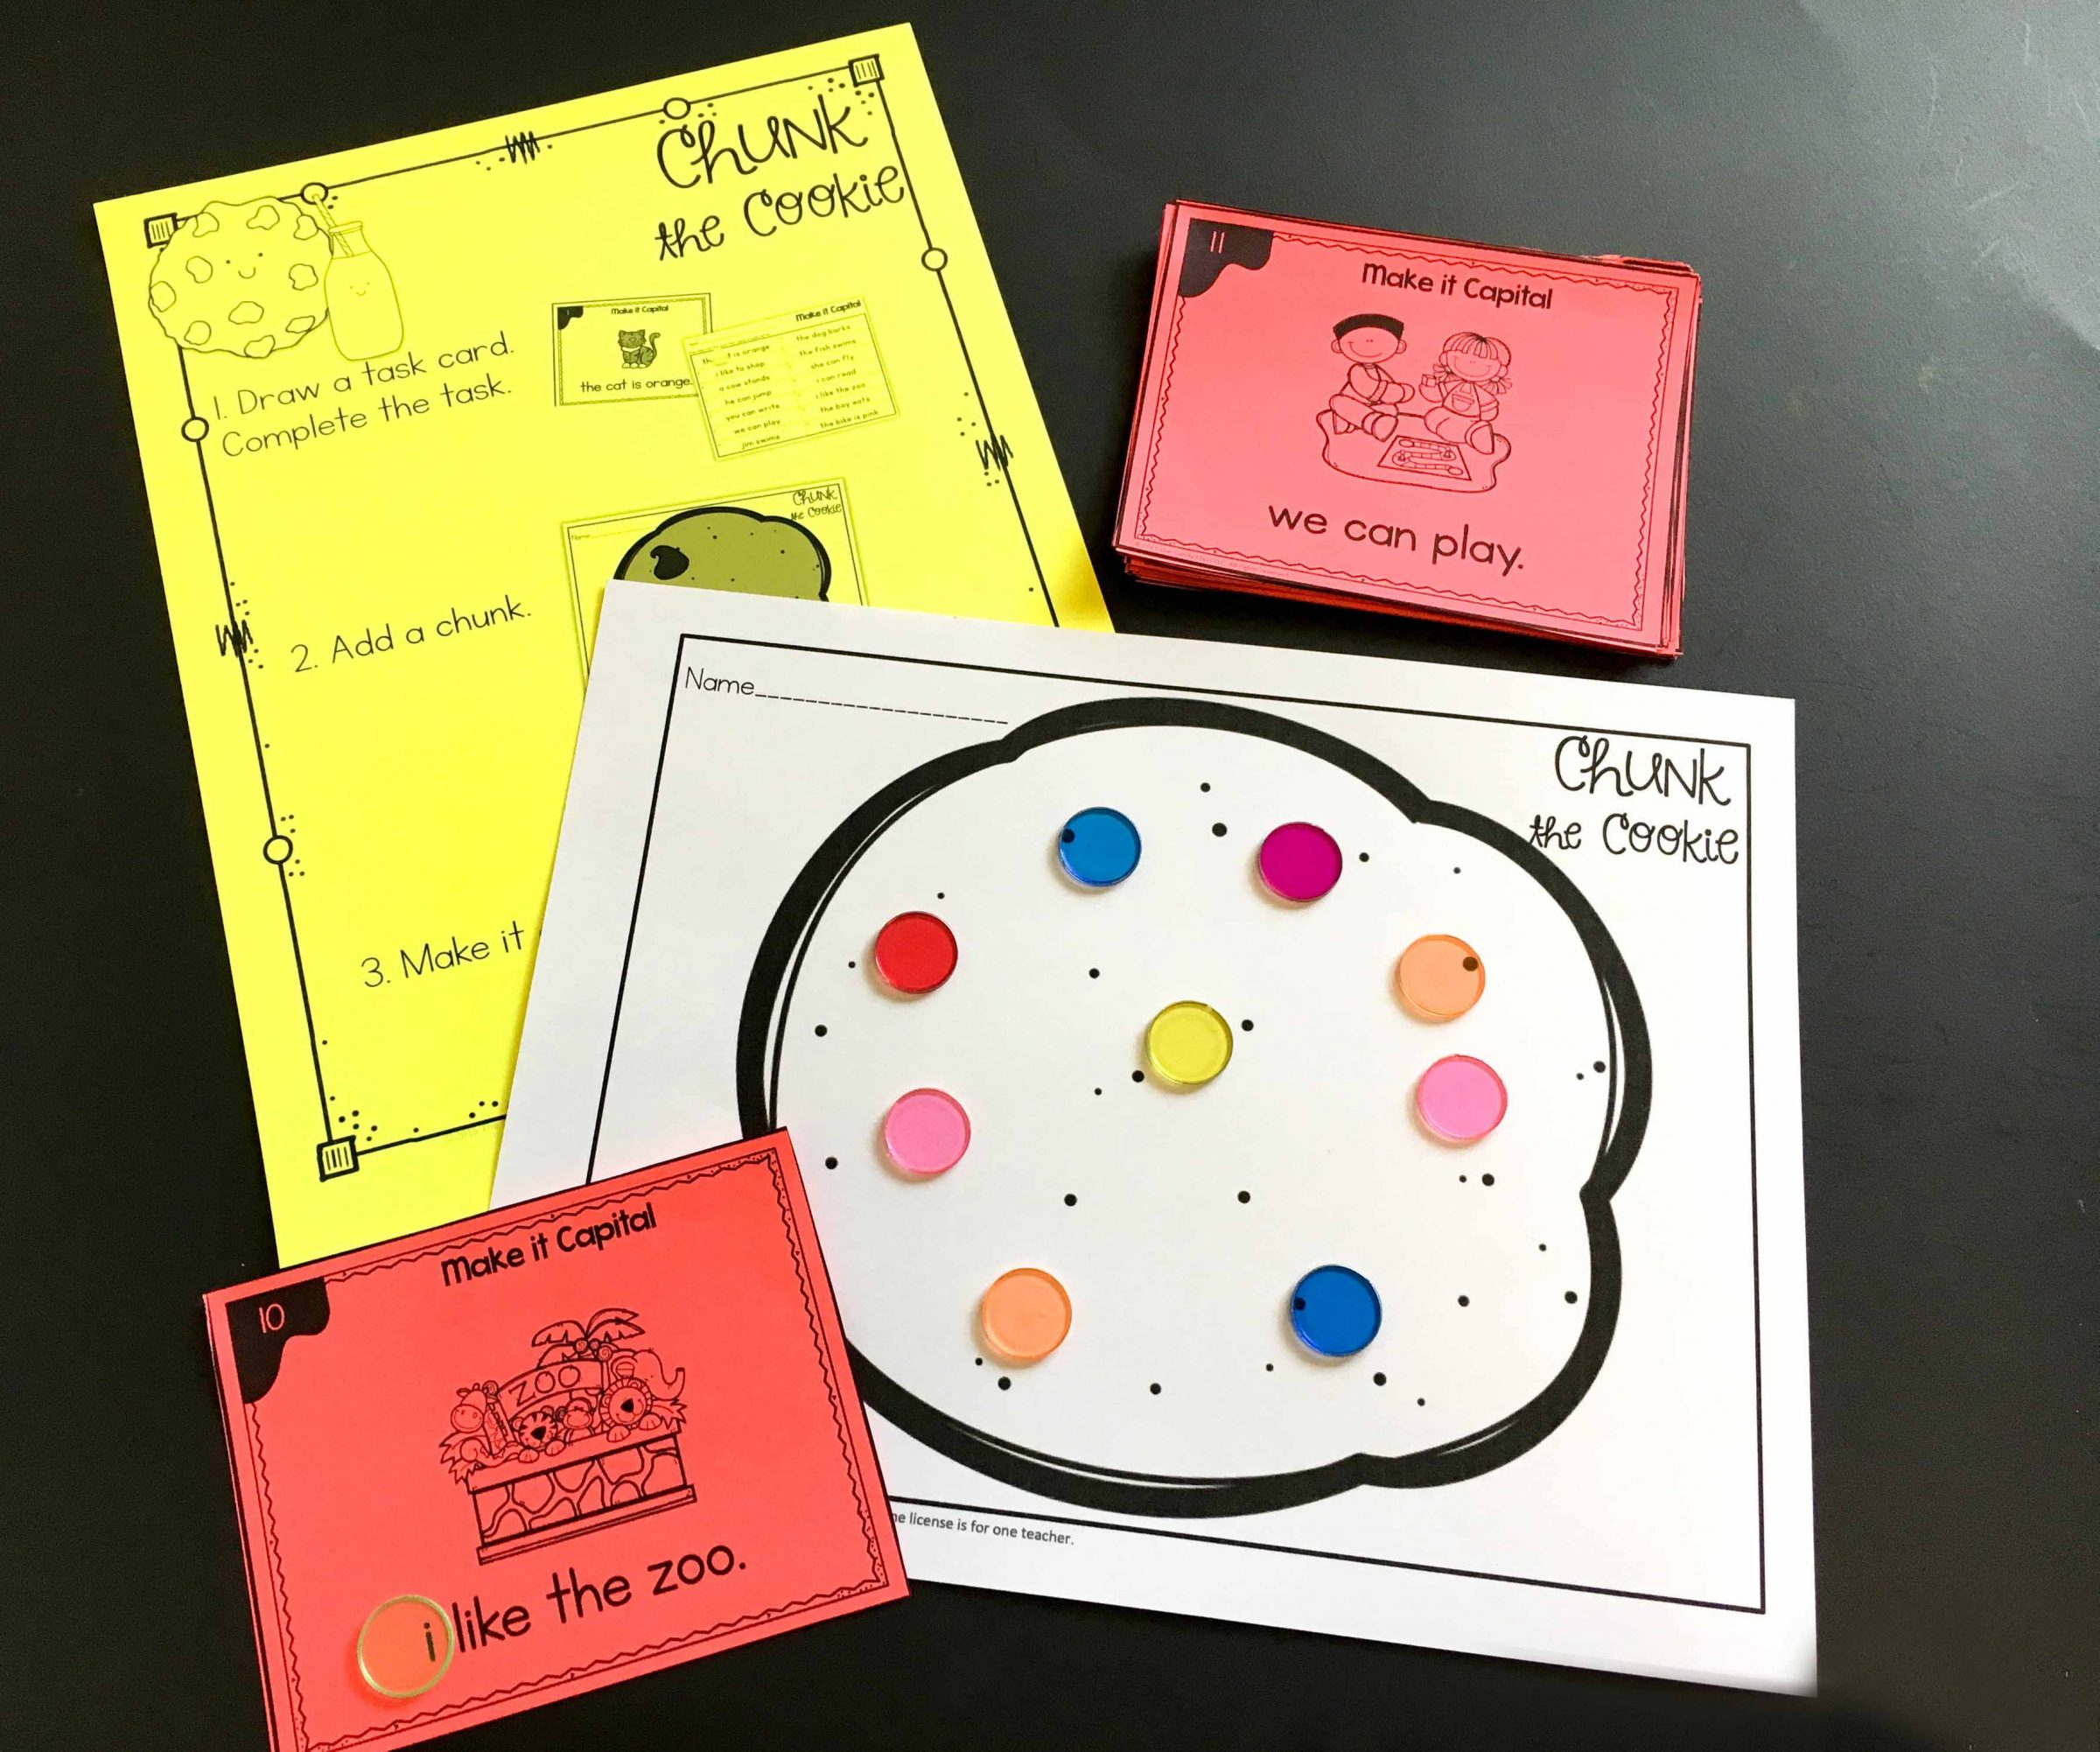 chunk the cookie task card game